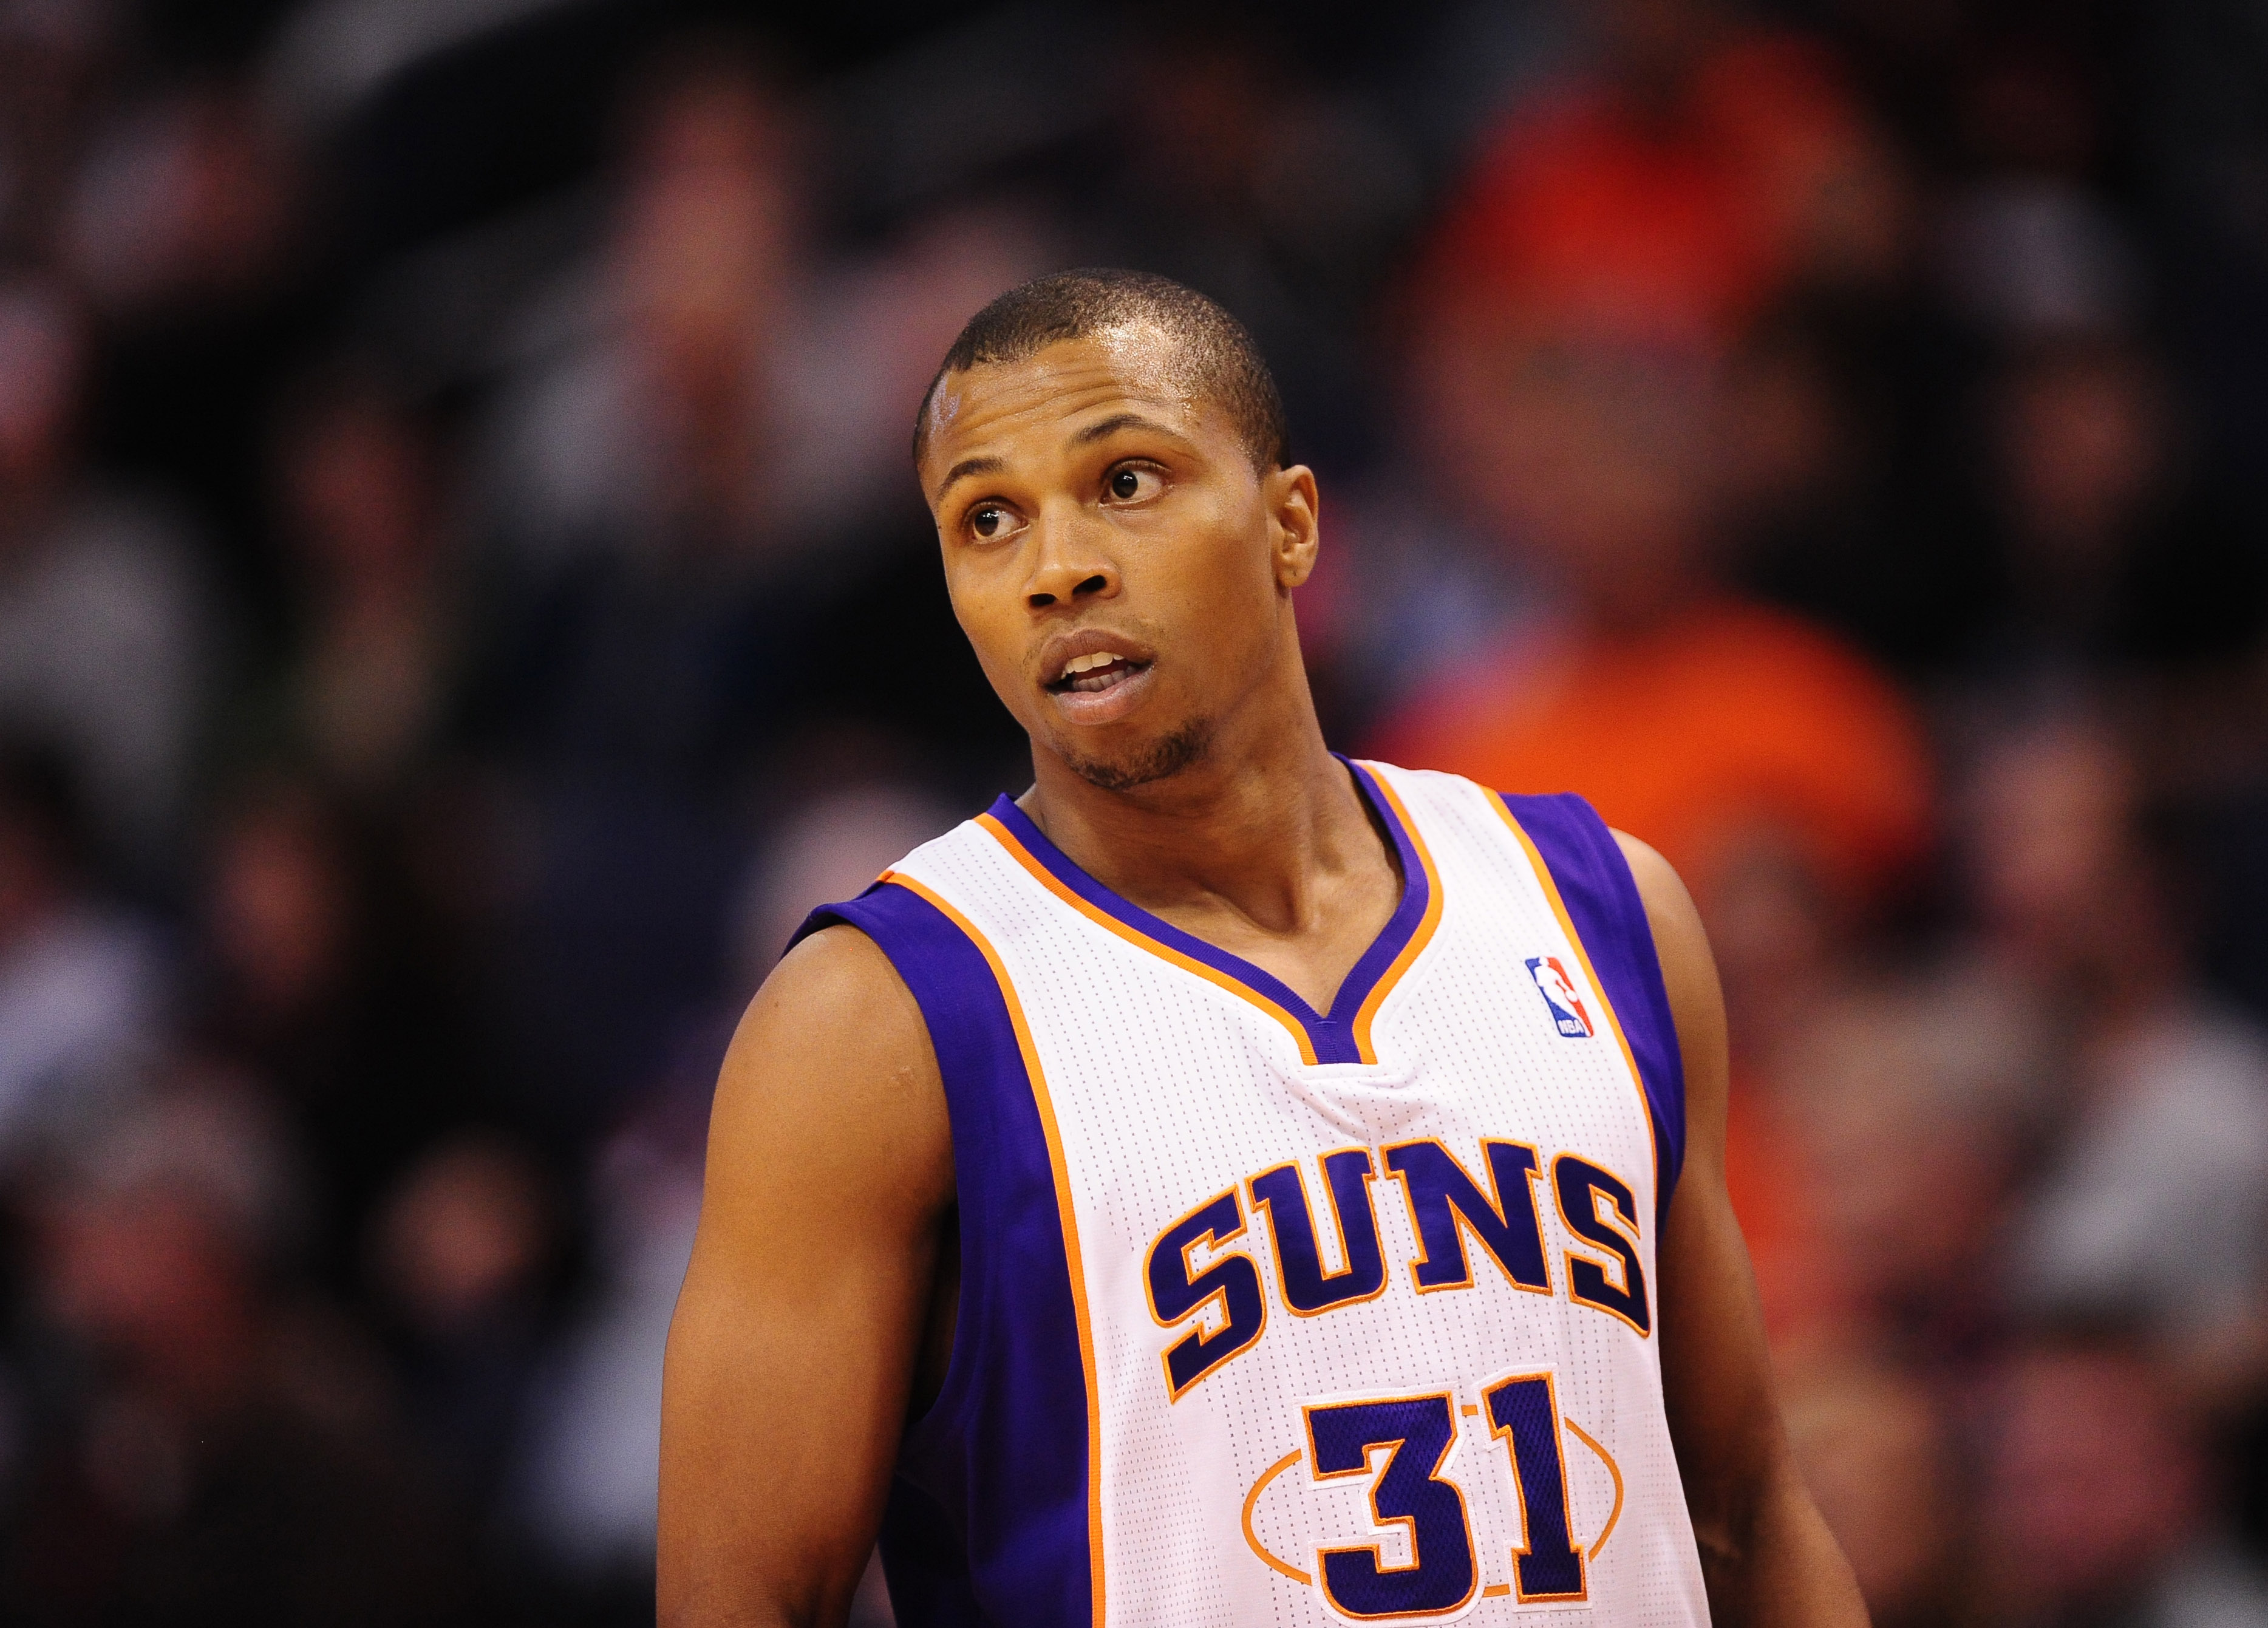 Sebastian Telfair played for the Suns and Raptors last season. (USA Today)